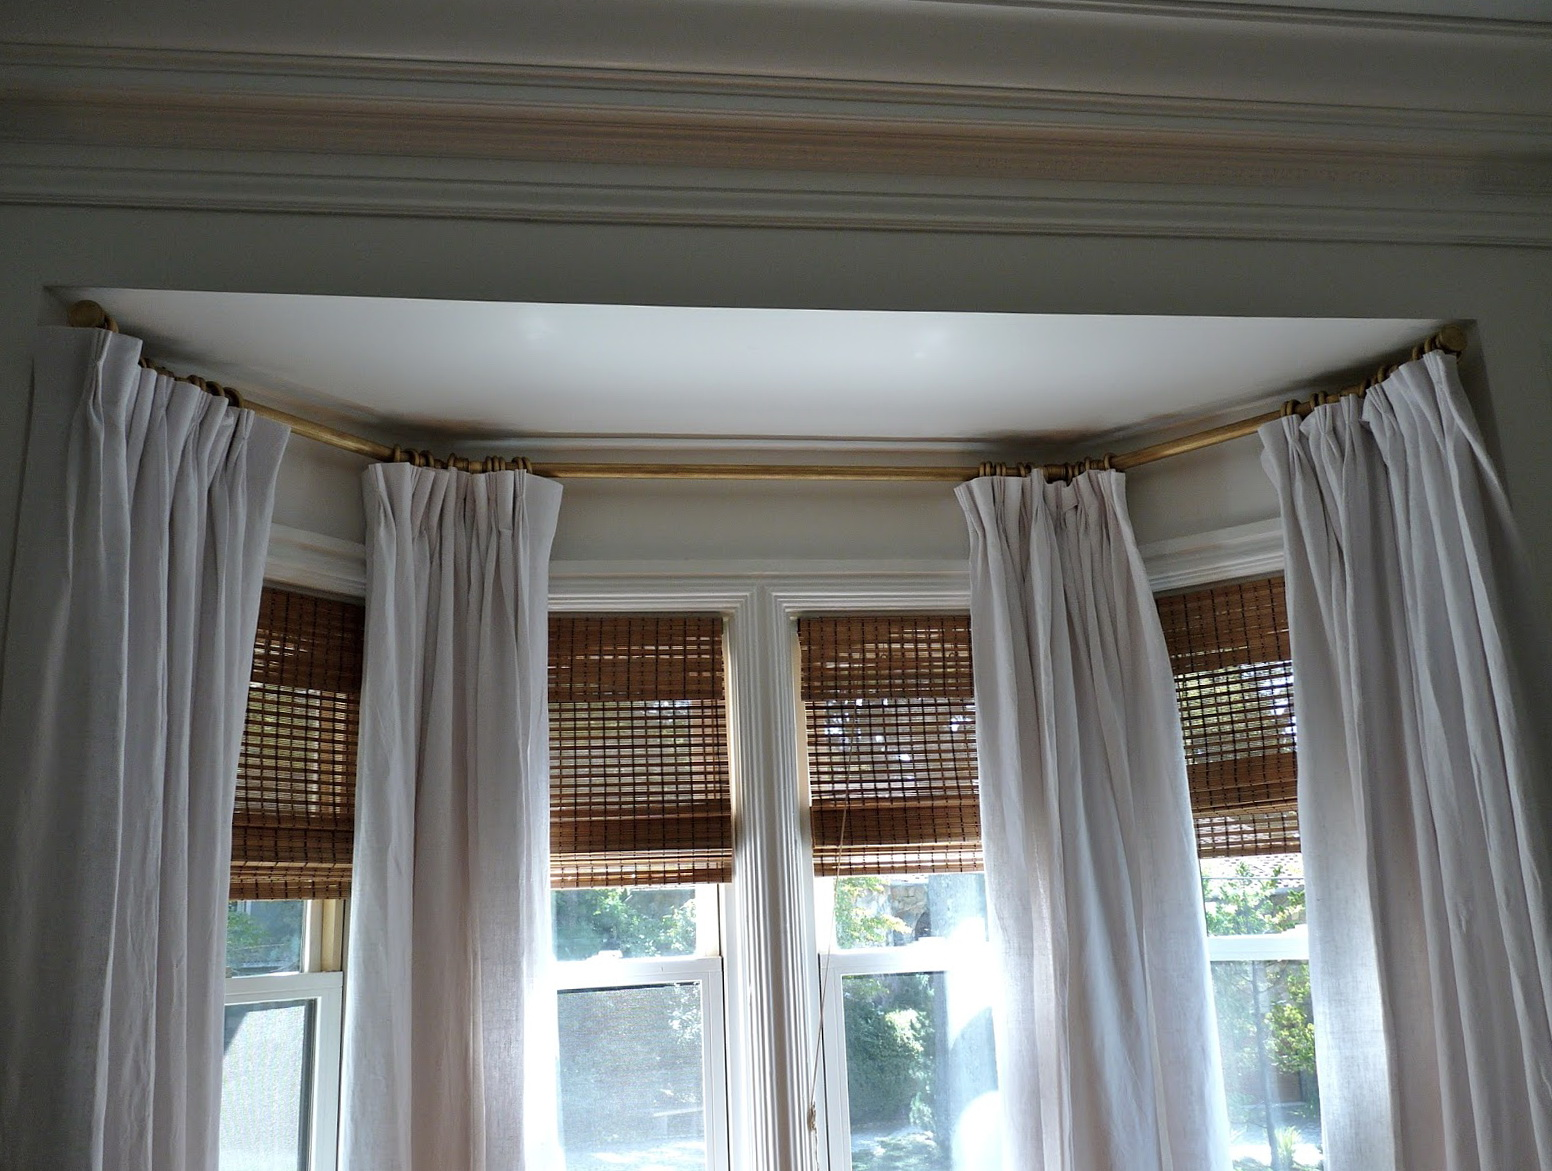 Curtain Rods For Bay Windows Home Depot Home Design Ideas